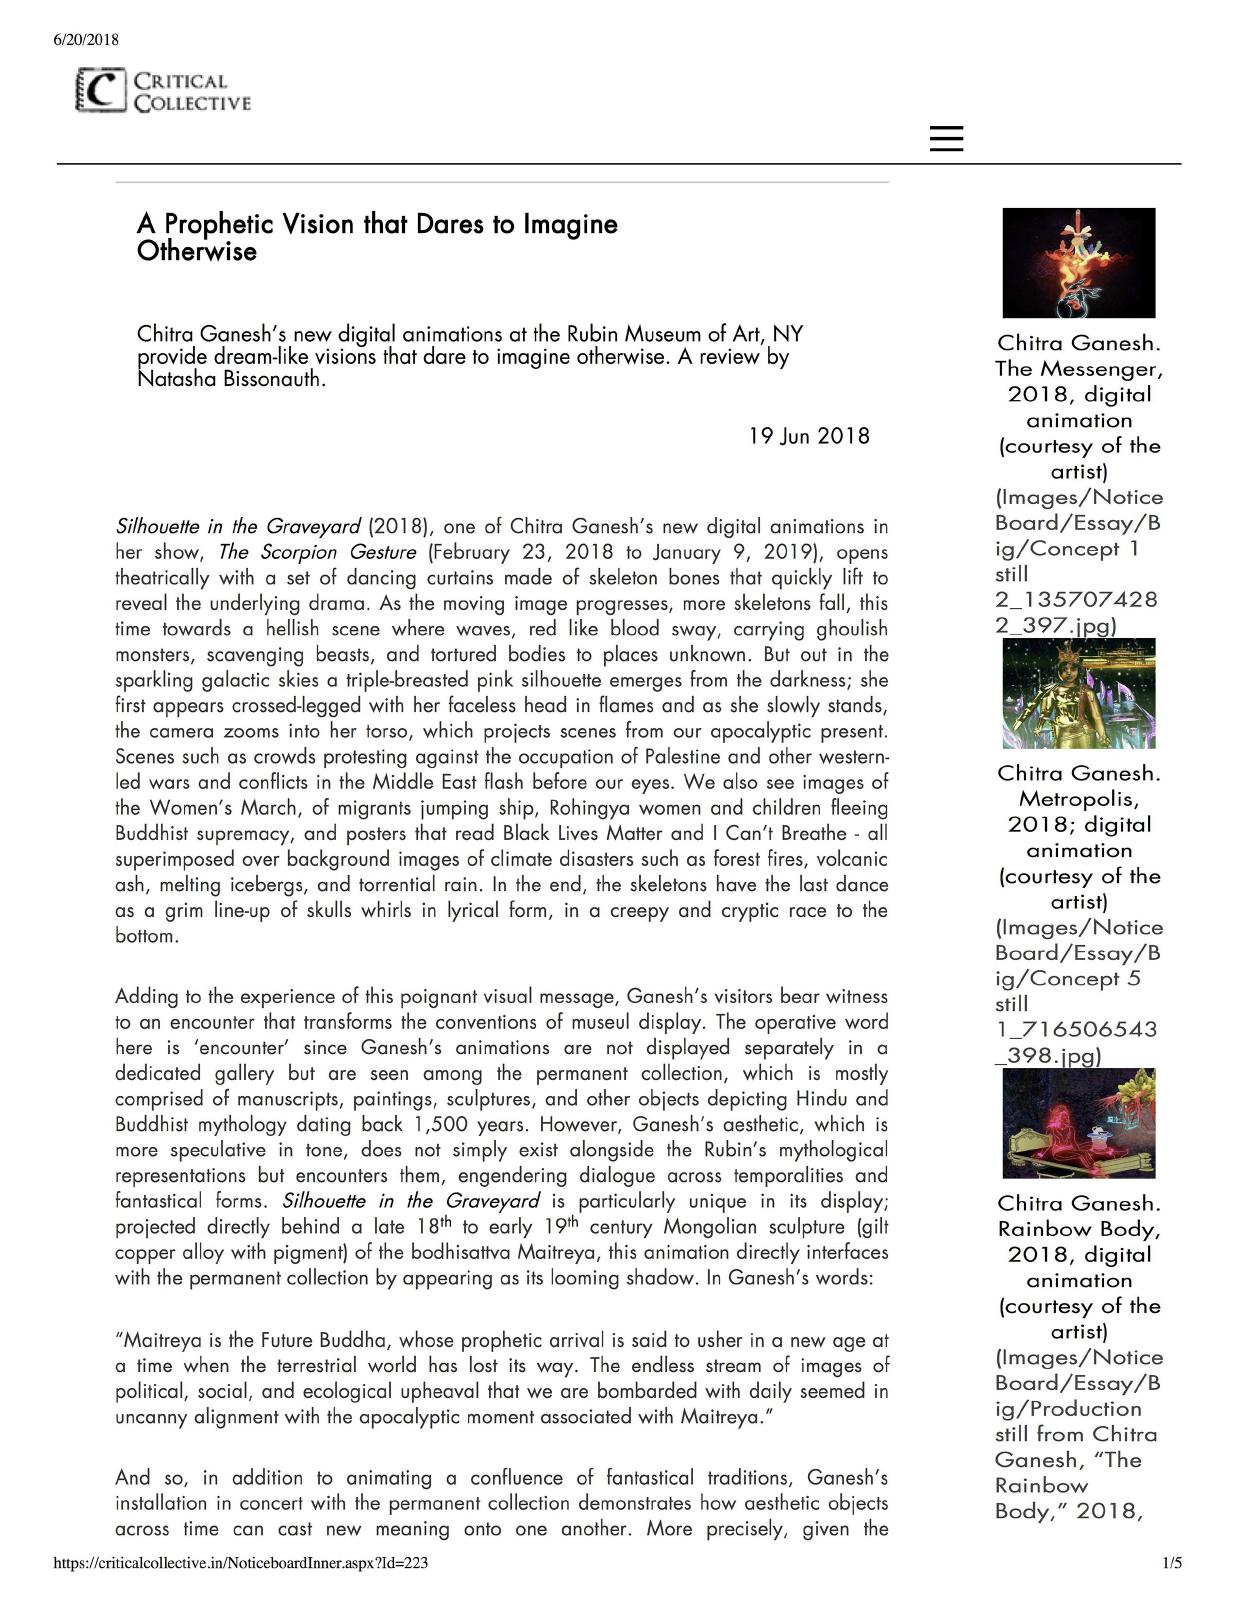 Natasha Bissonauth critical collective scholarly review-min_Page_1.jpg